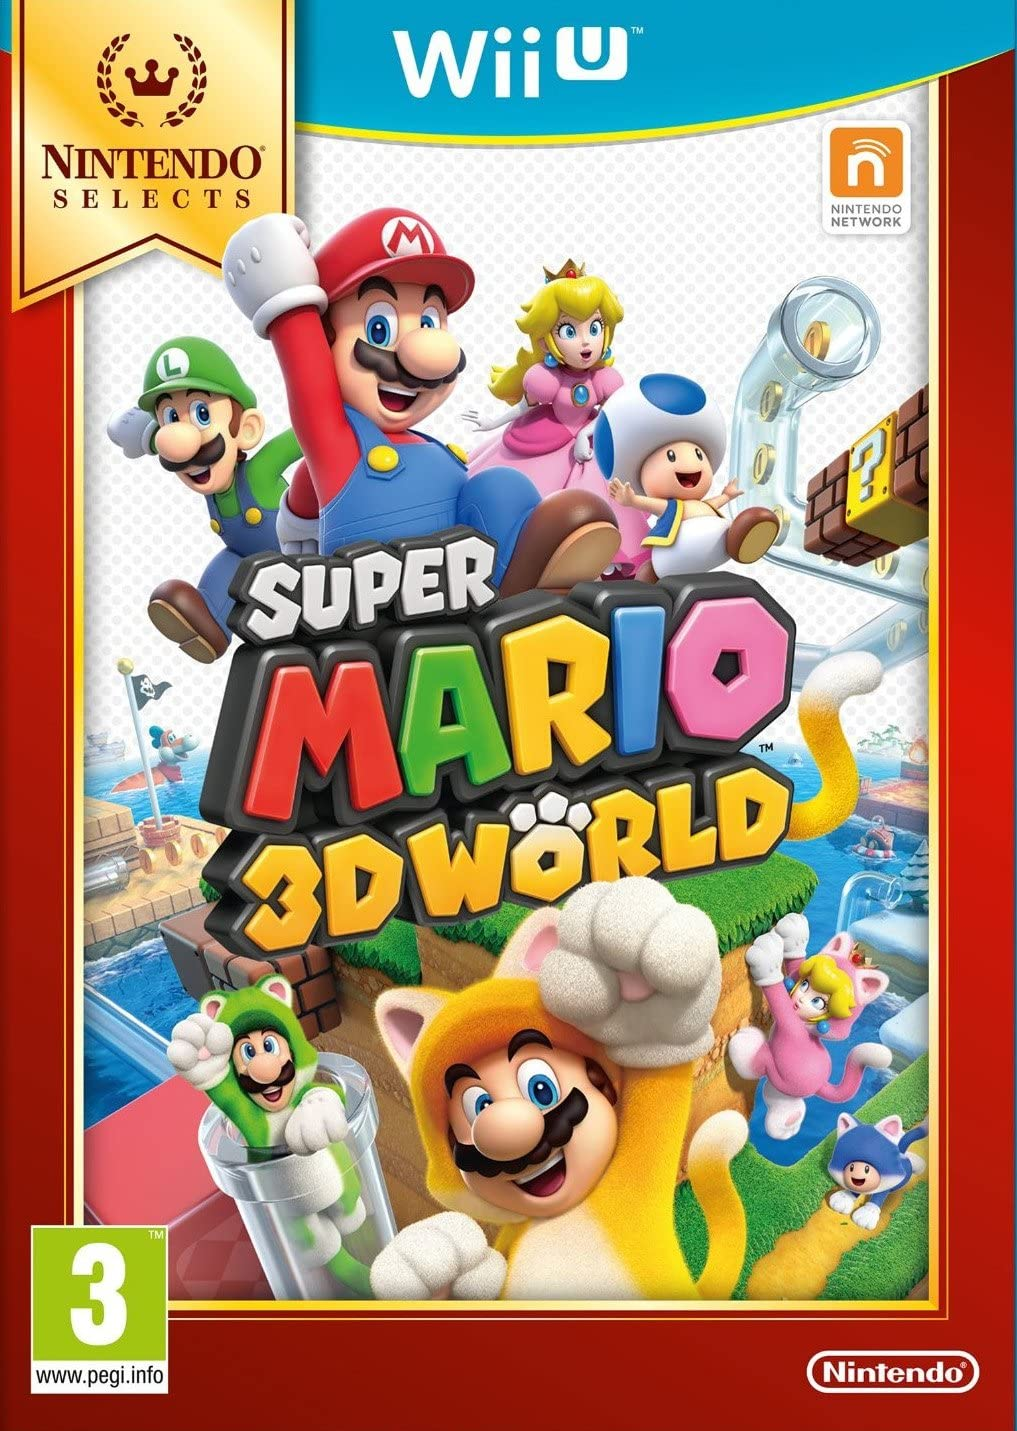 Nintendo Selects: Super Mario 3D World: Amazon.es: Videojuegos